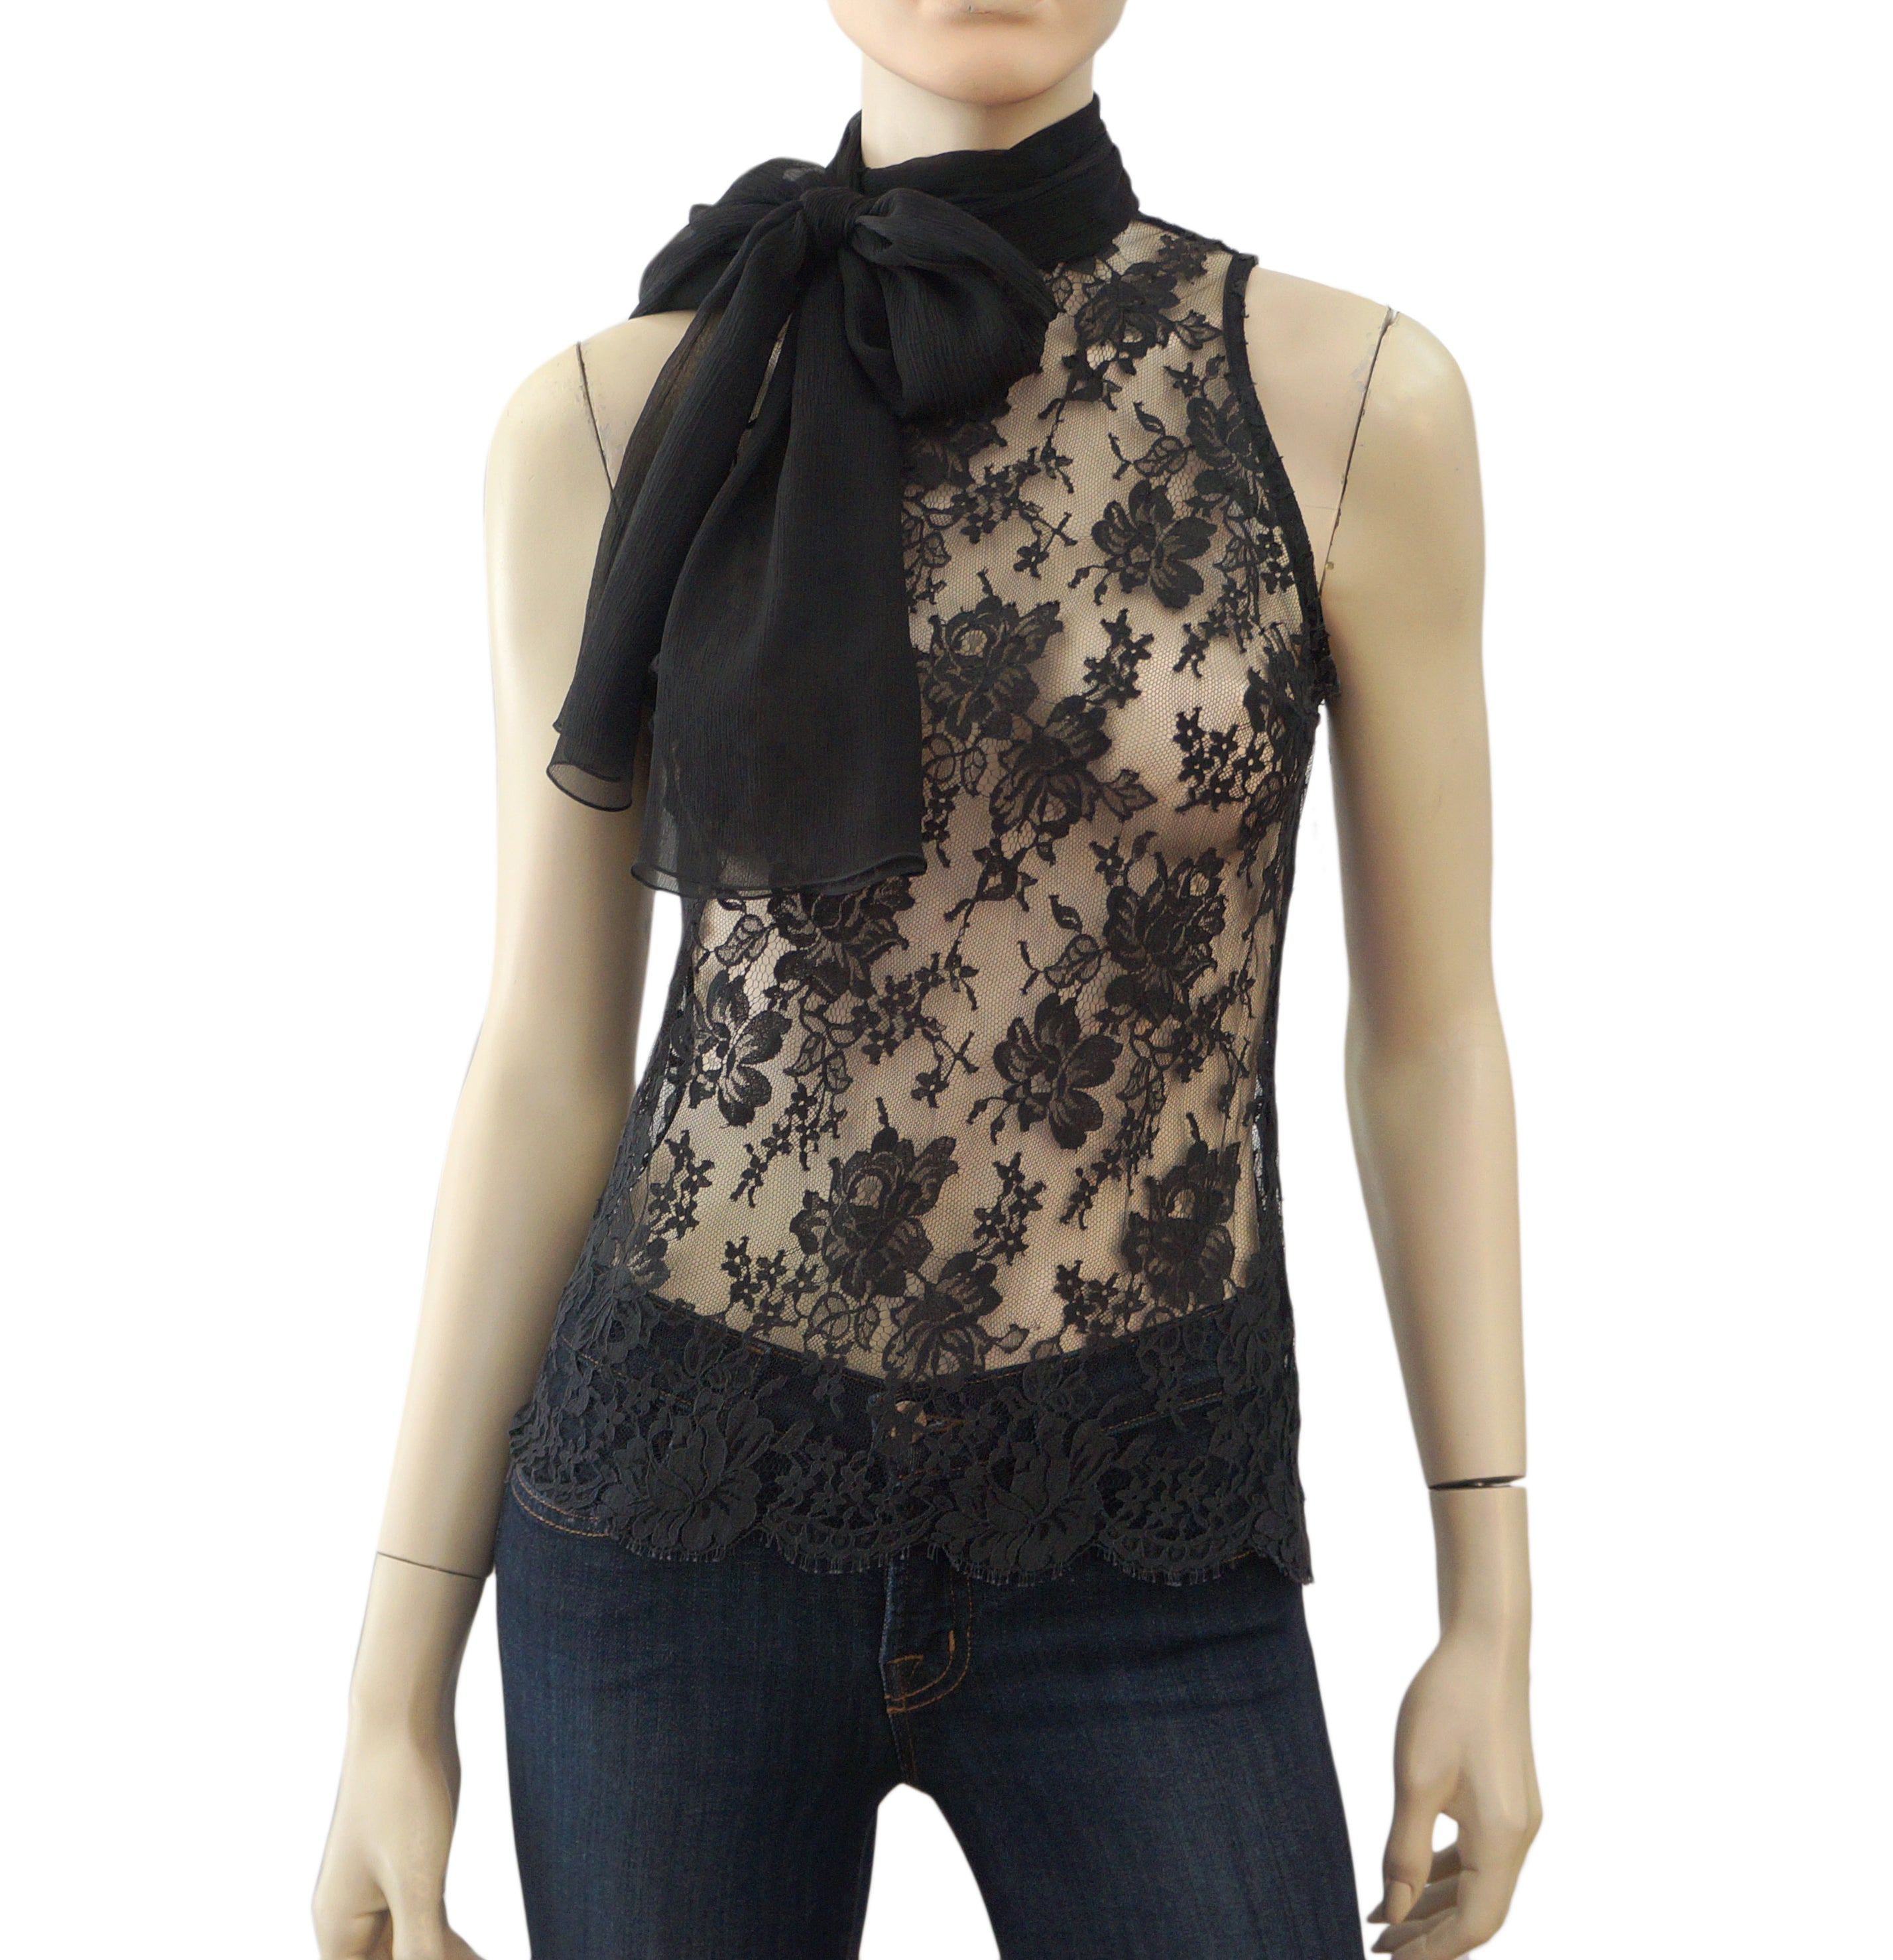 f4d6ea721c80fb LORENA CONTI Sleeveless Black Stretch Lace Scarf Tie Blouse Top ...